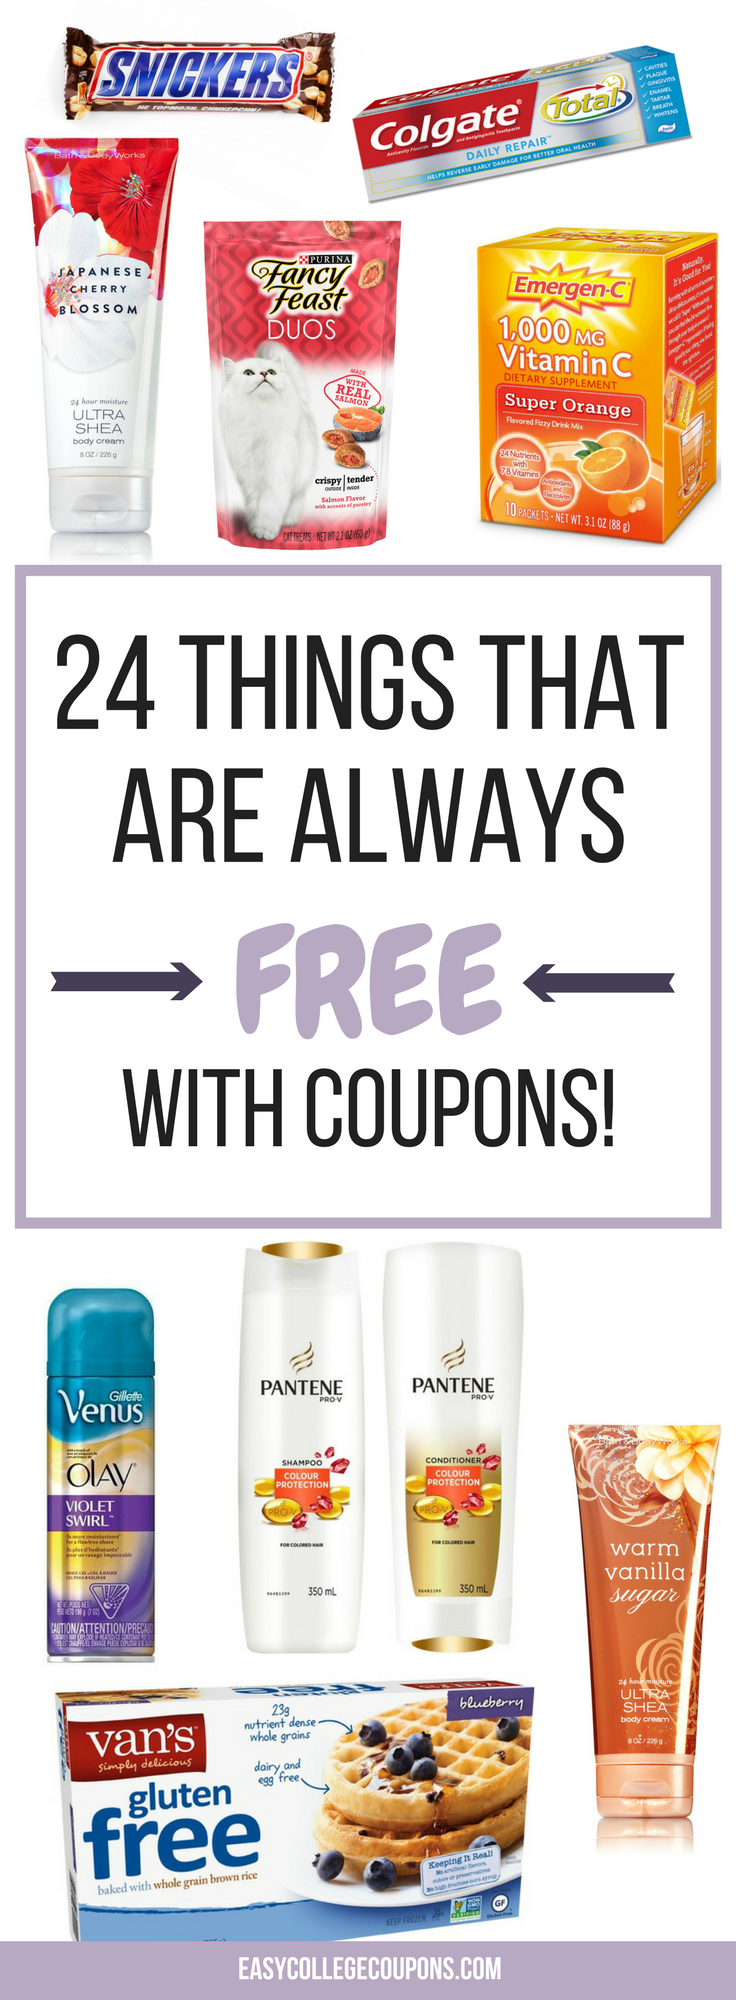 24 Things That Are Always Free With Coupons + 6 Things That Are Super Cheap!